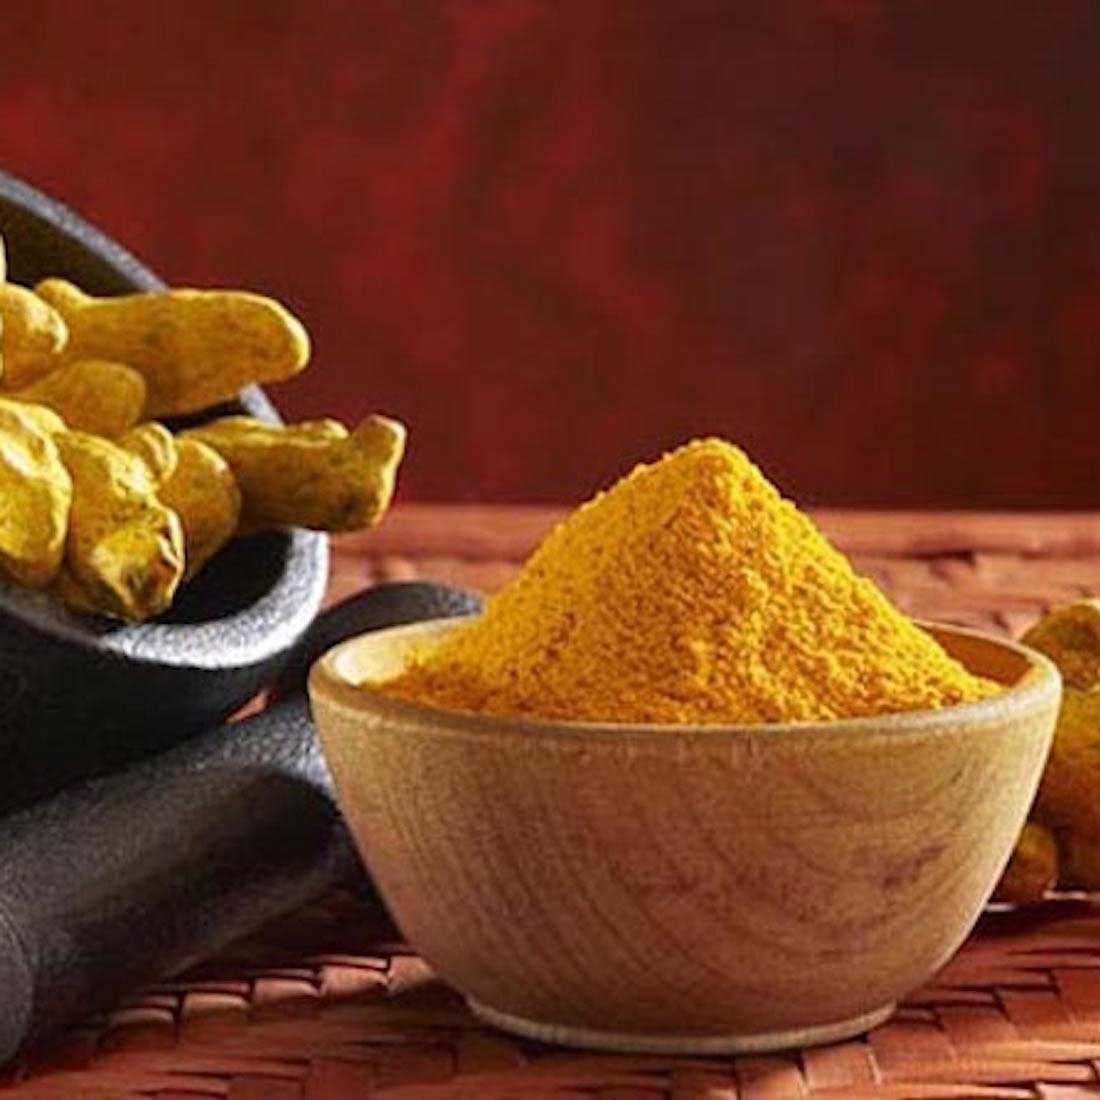 The Benefits of Turmeric for Arthritis